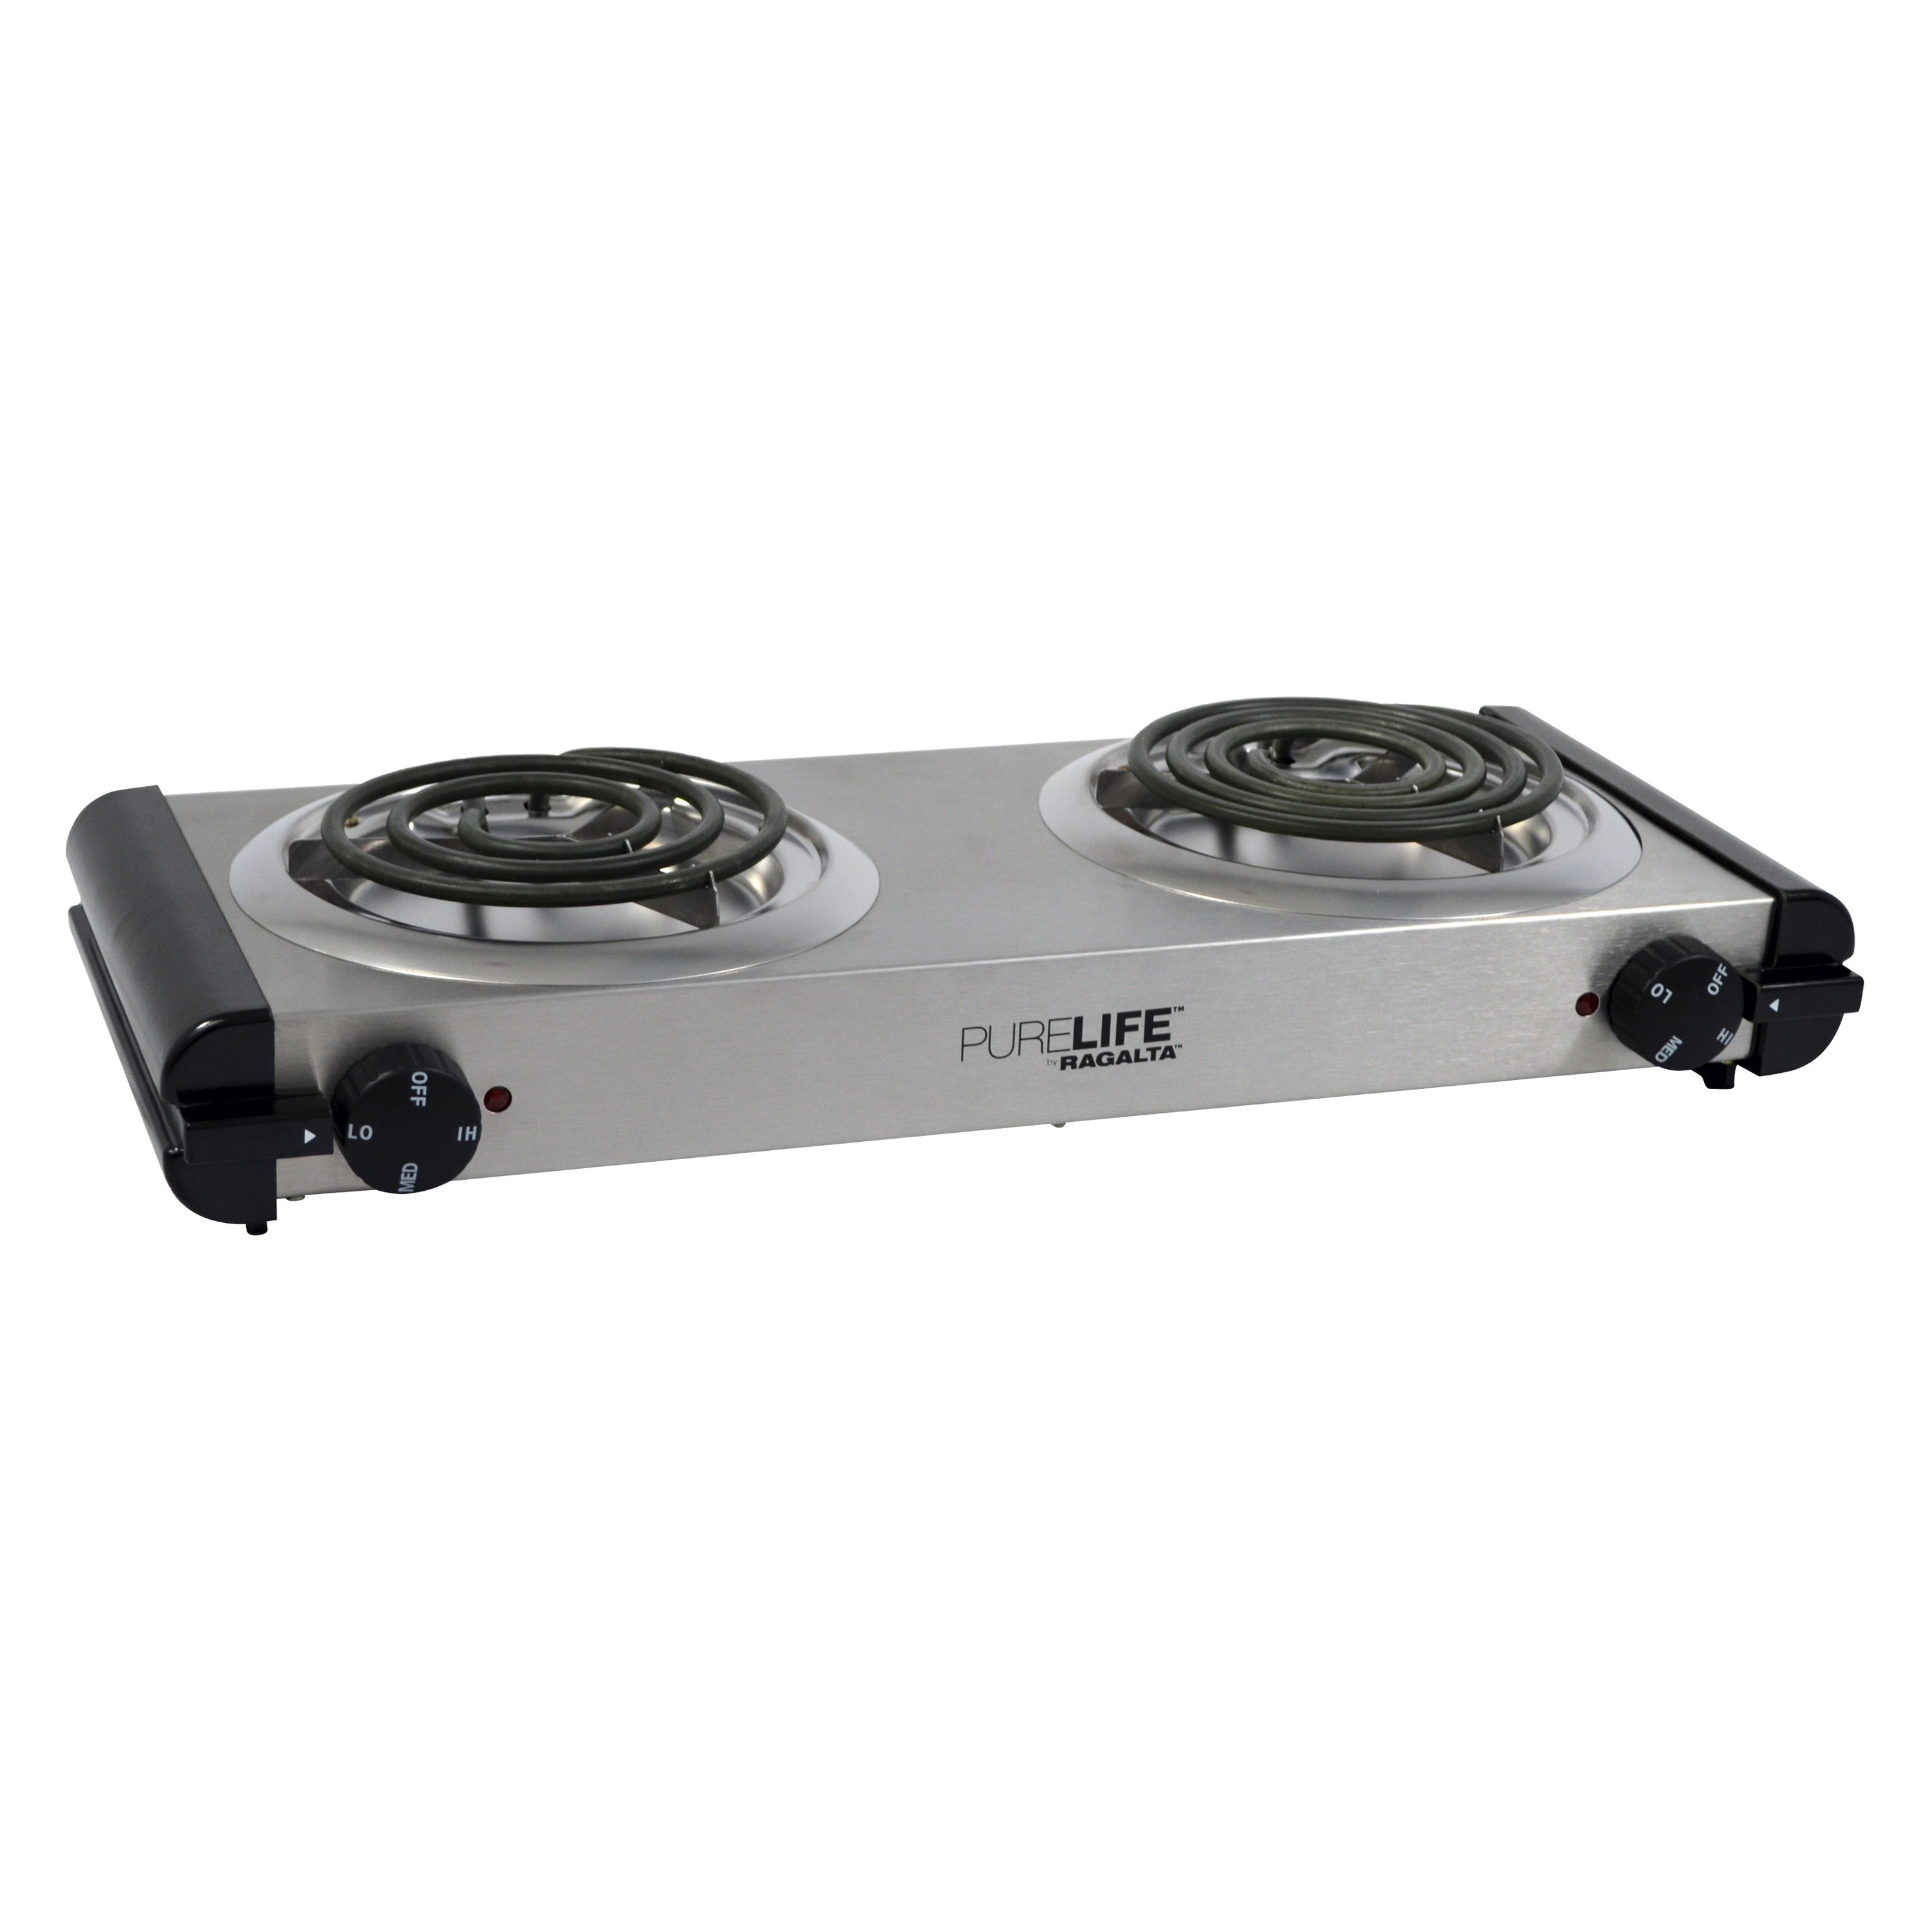 Purelife Portable Electric Double Burner   2 X Burner   Stainless Steel  (rcb 20)